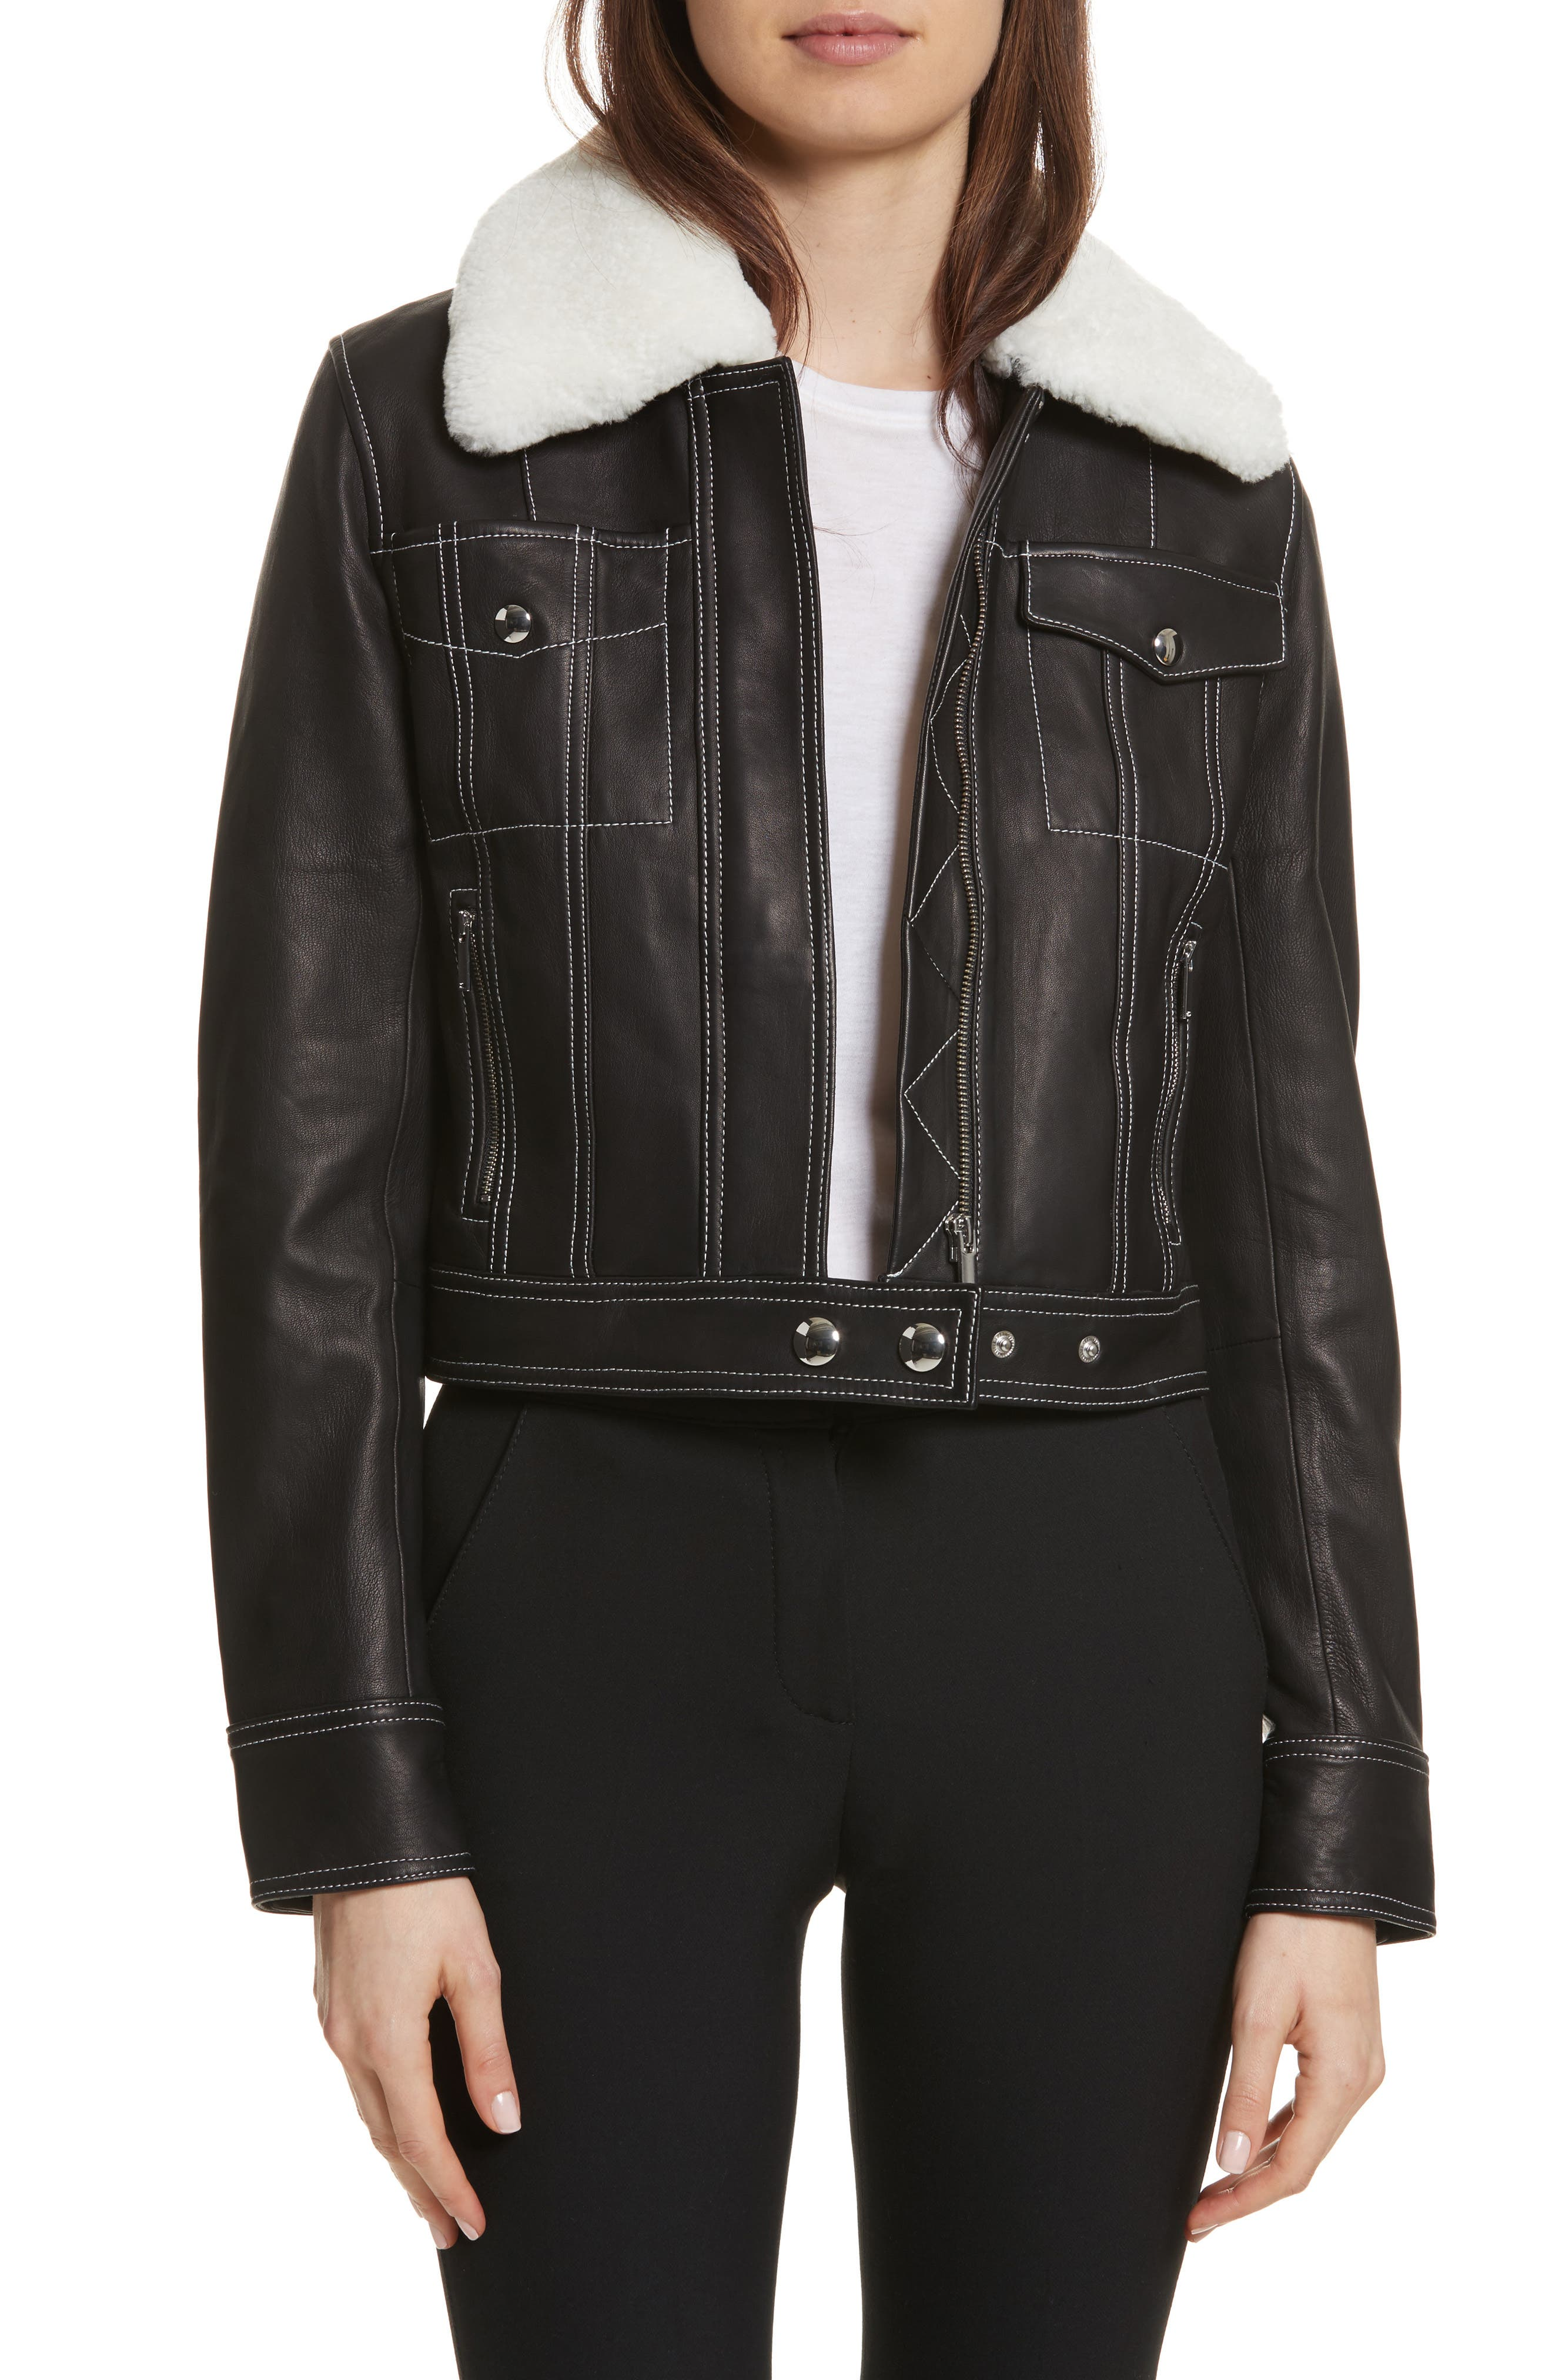 GREY Jason Wu Shrunken Leather Jacket with Removable Genuine Shearling Collar,                             Main thumbnail 1, color,                             009